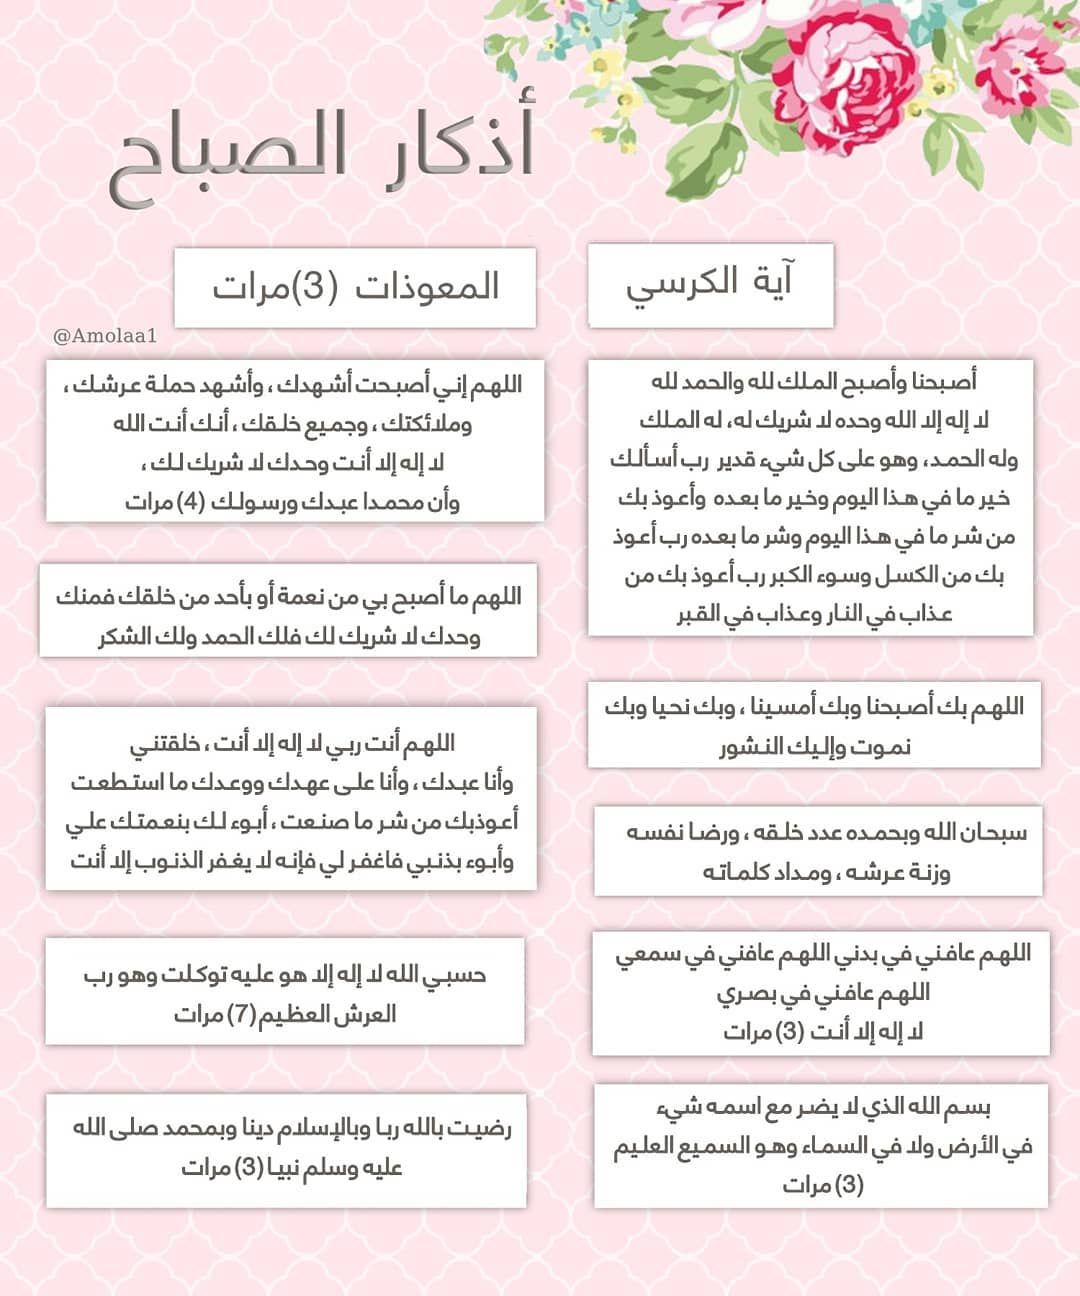 Pin By Hadji Arts On الأذكار Islam Facts Islamic Phrases Islam Beliefs